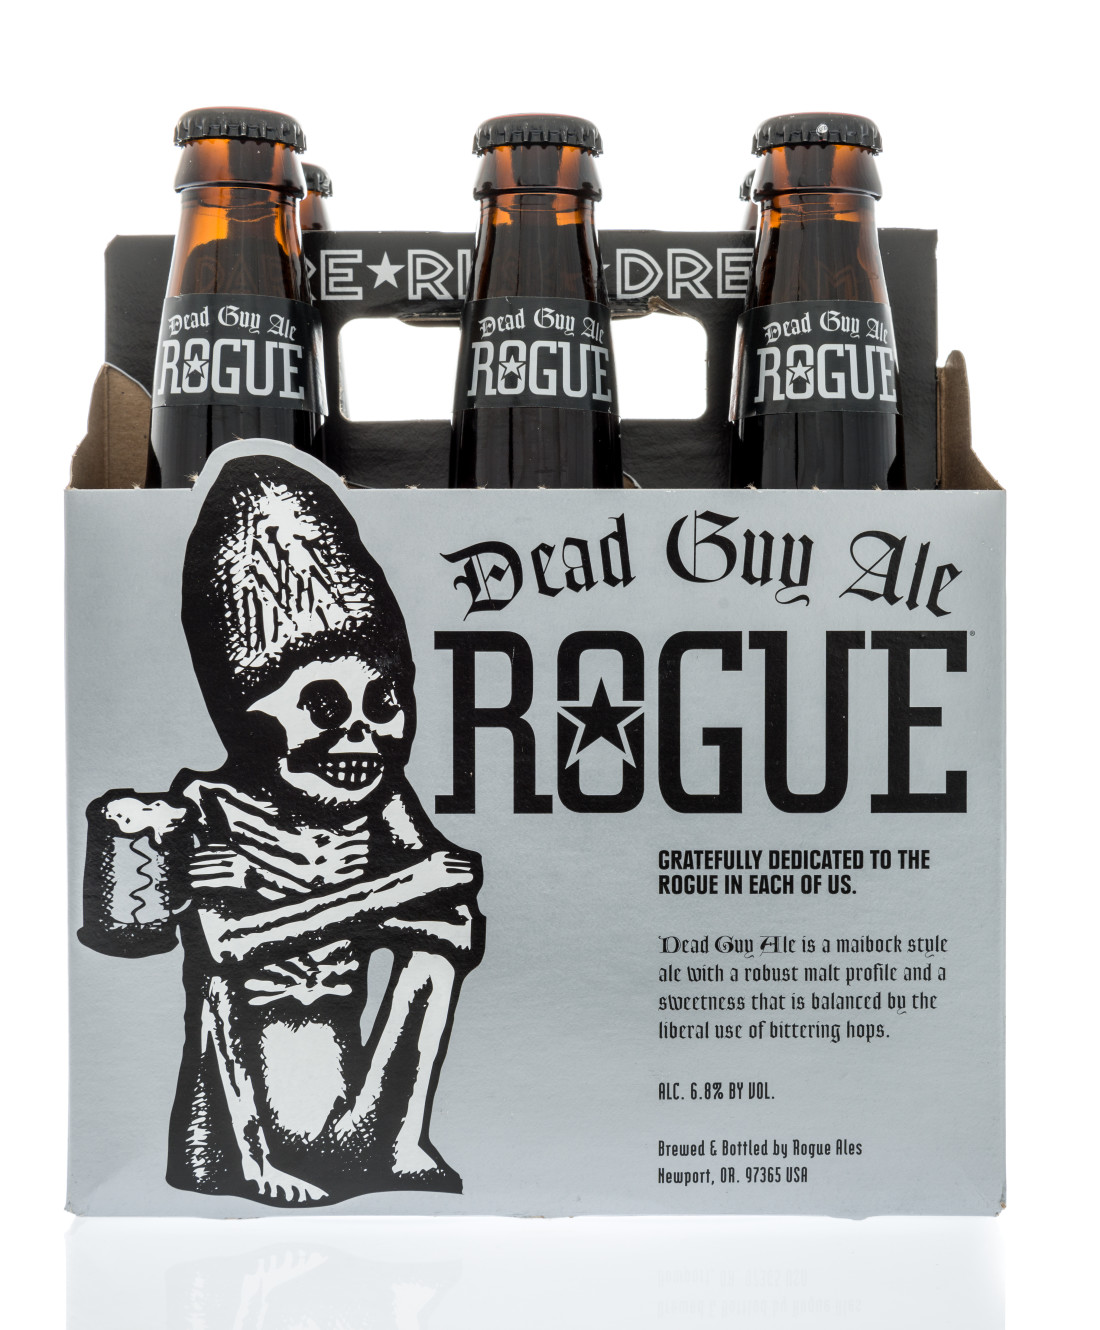 Rogue Dead Guy Ale Six Pack Photo